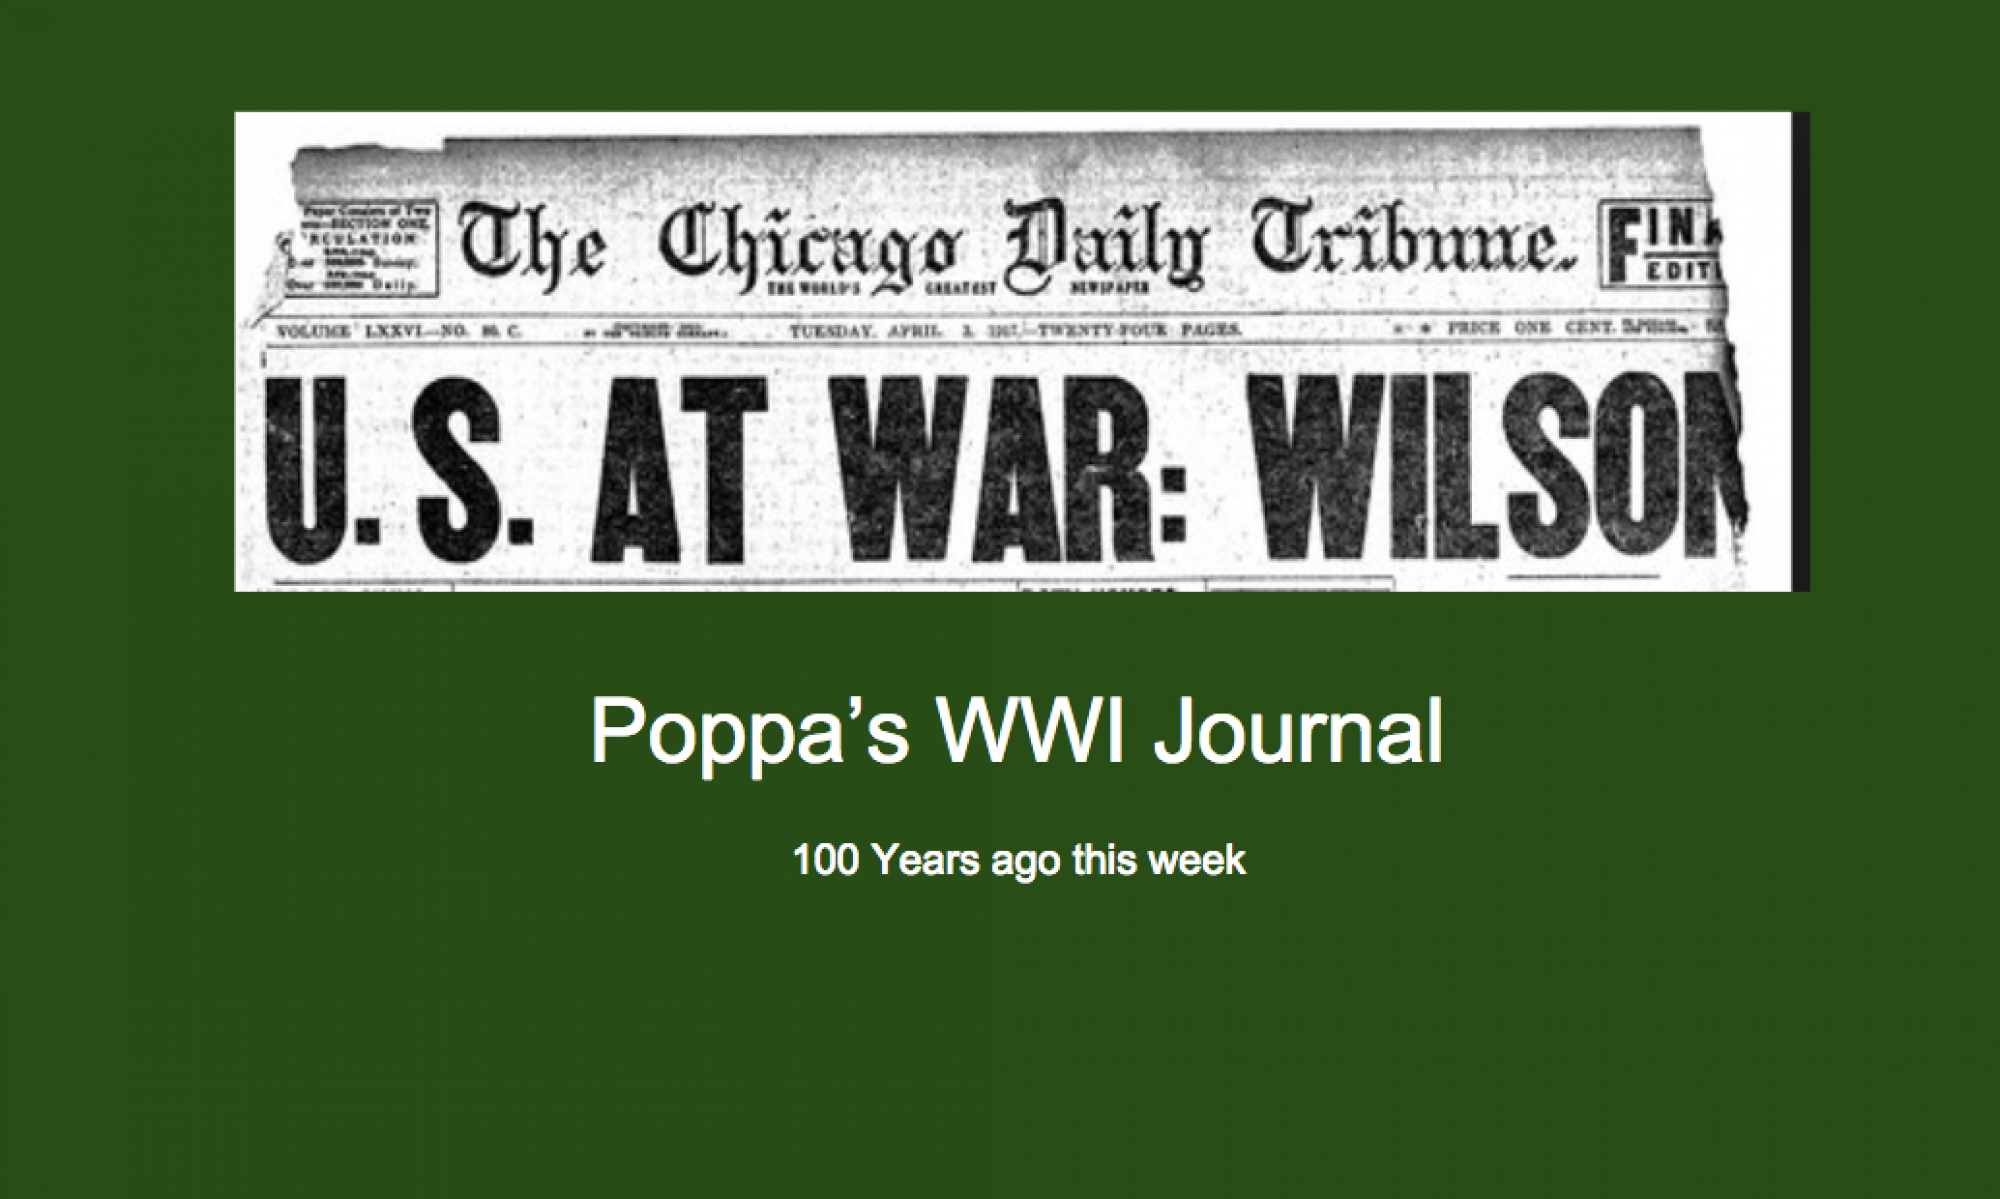 Poppa's WWI Journal